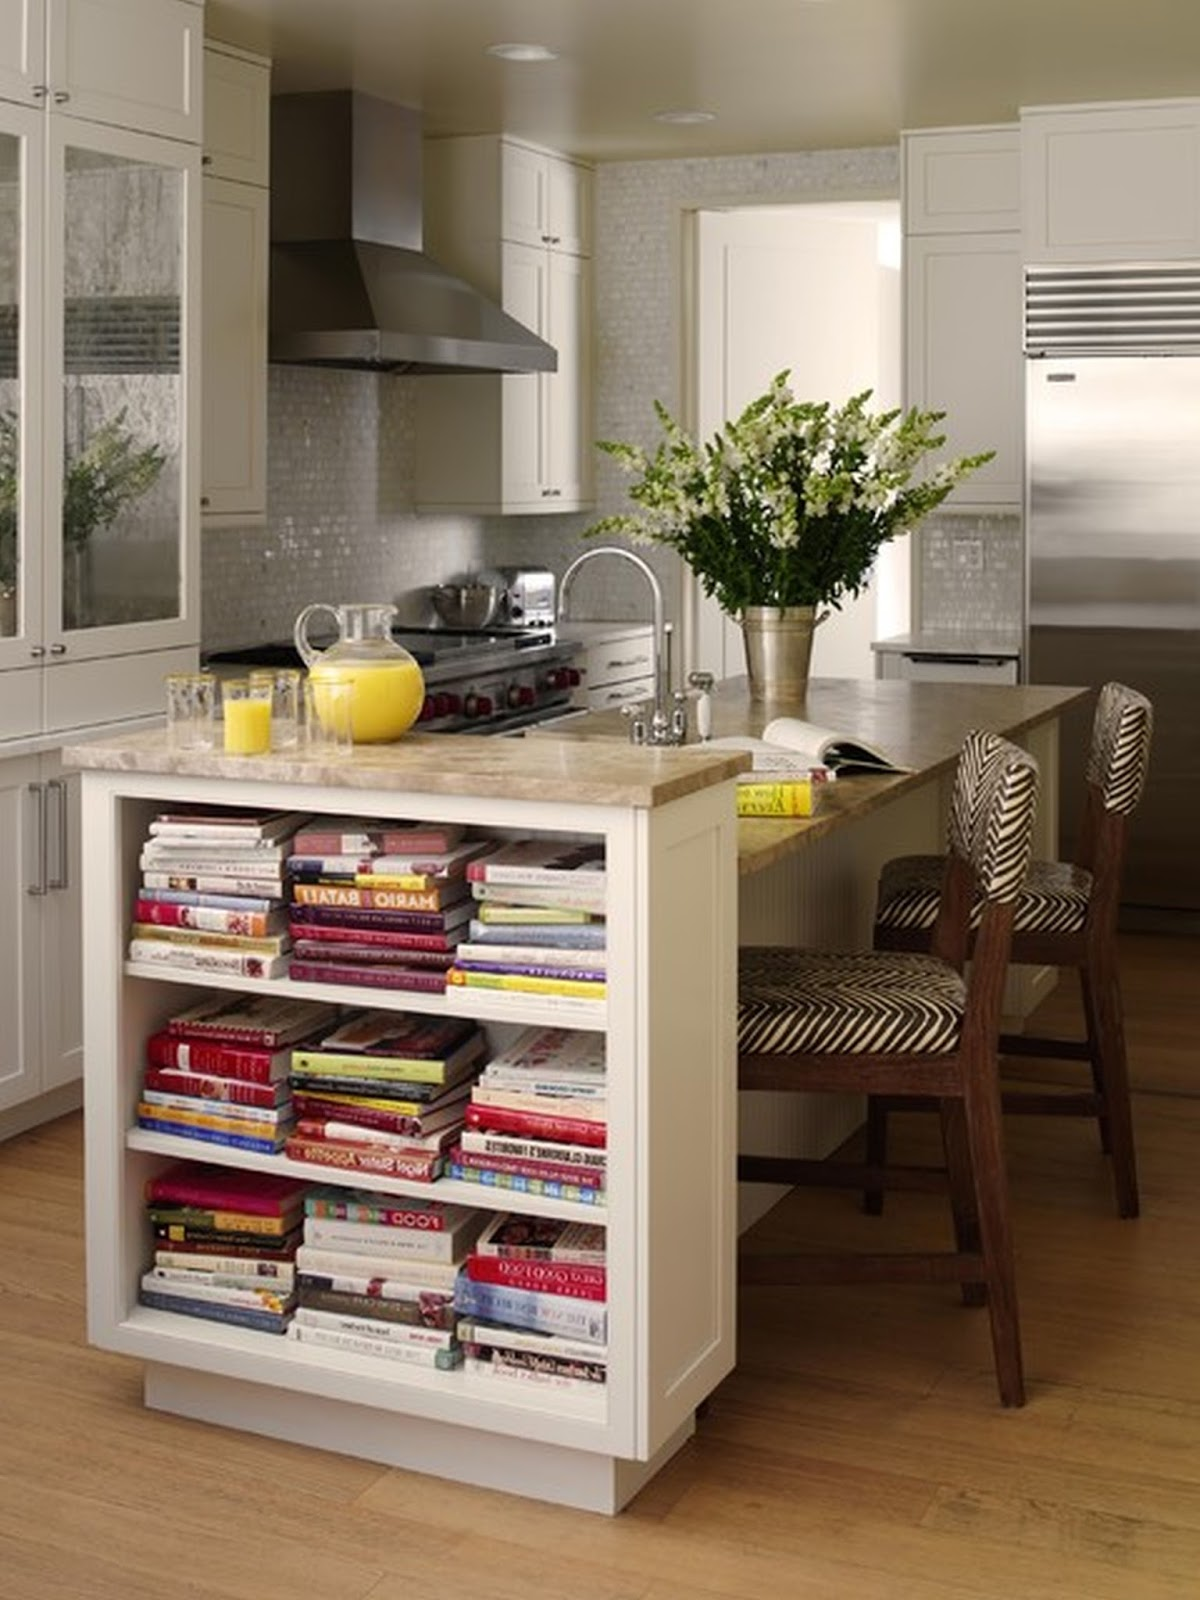 diy bookcase kitchen island black painted pallets divider design diy bookcase kitchen island